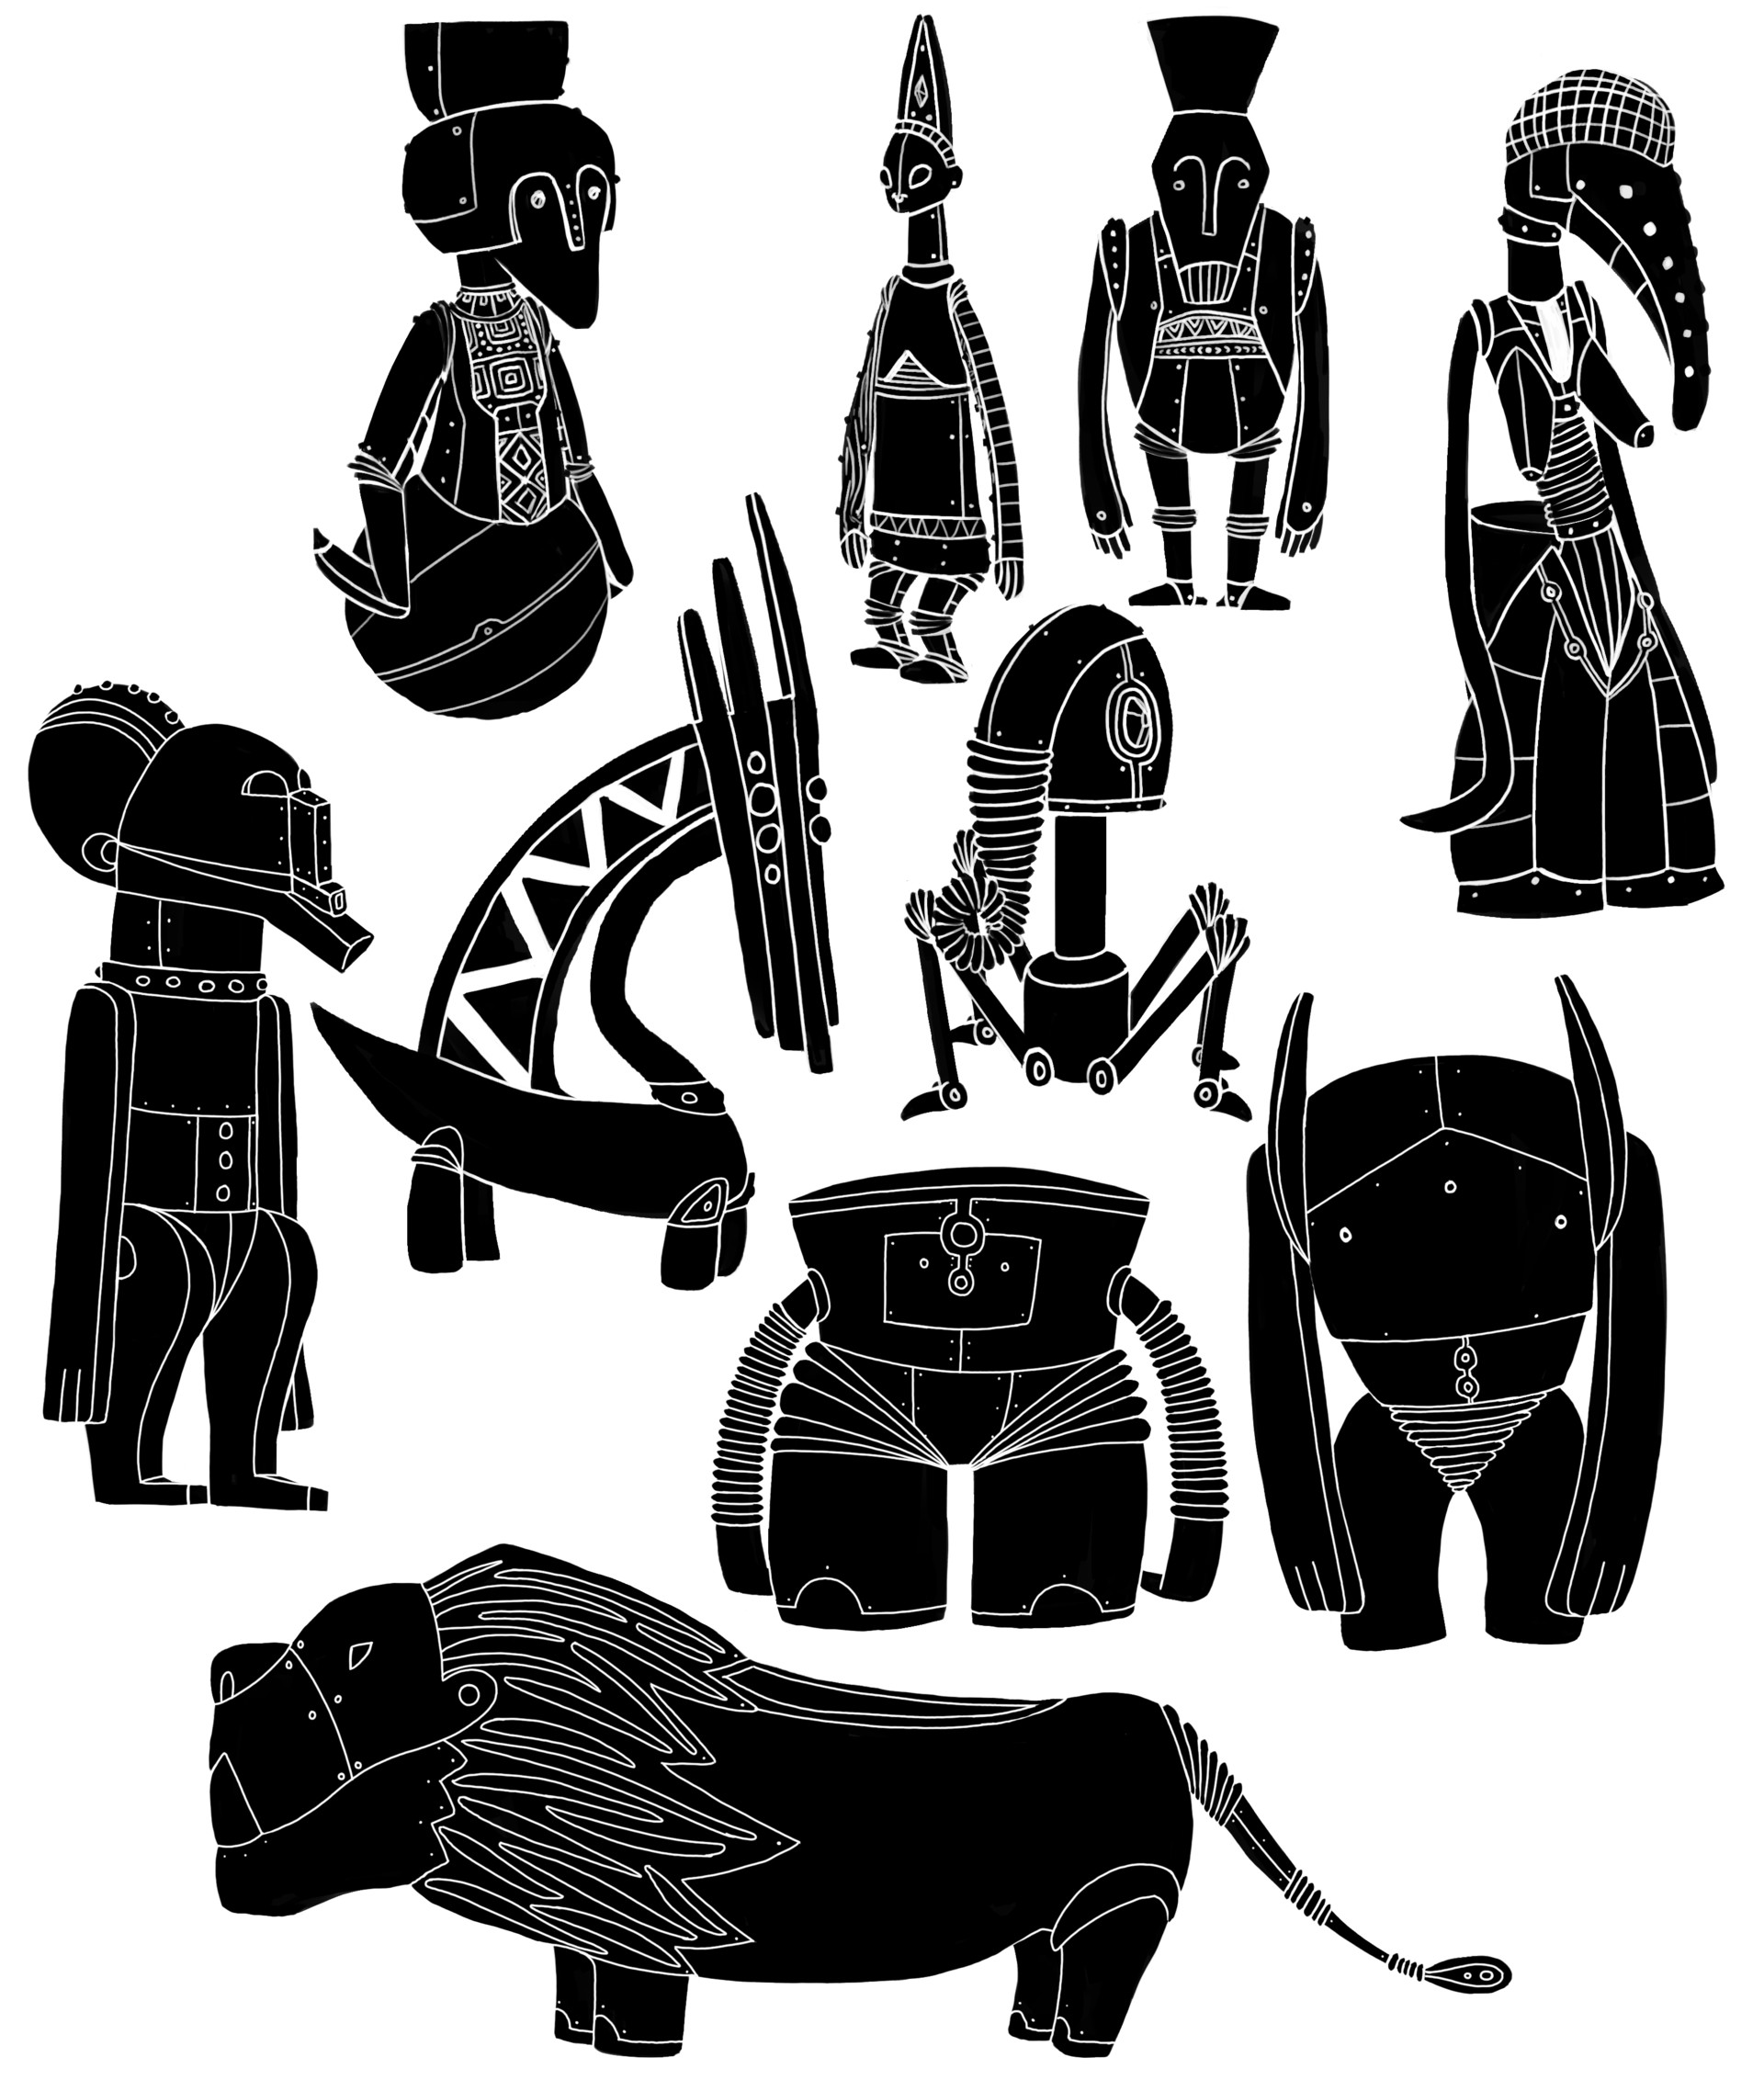 Robots silhouettes